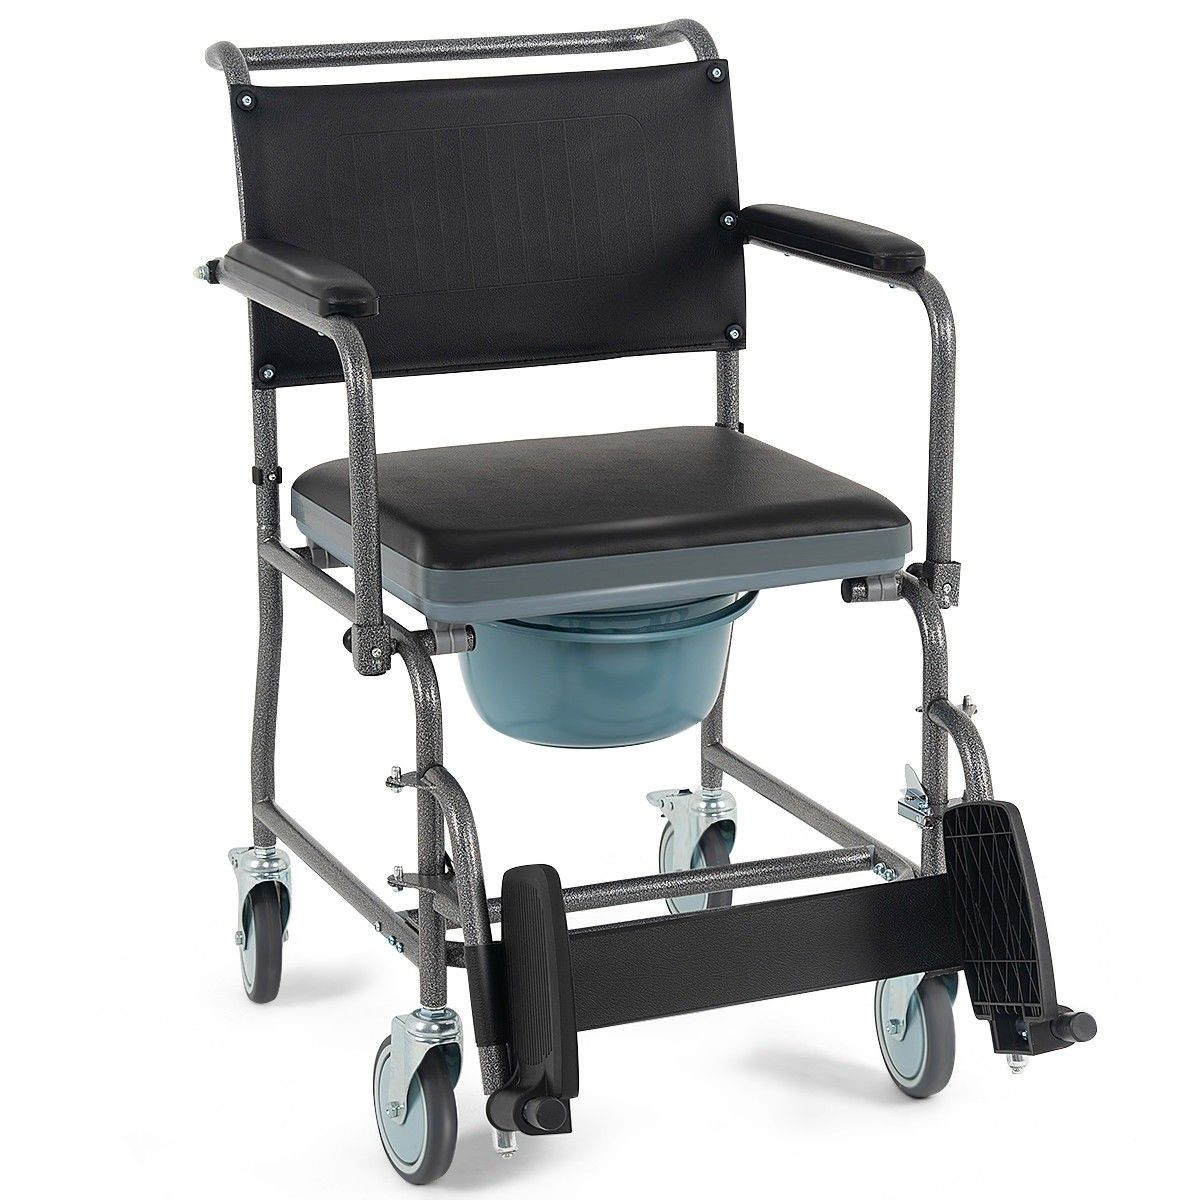 Medical Transport Toilet Commode Wheelchair with Locking